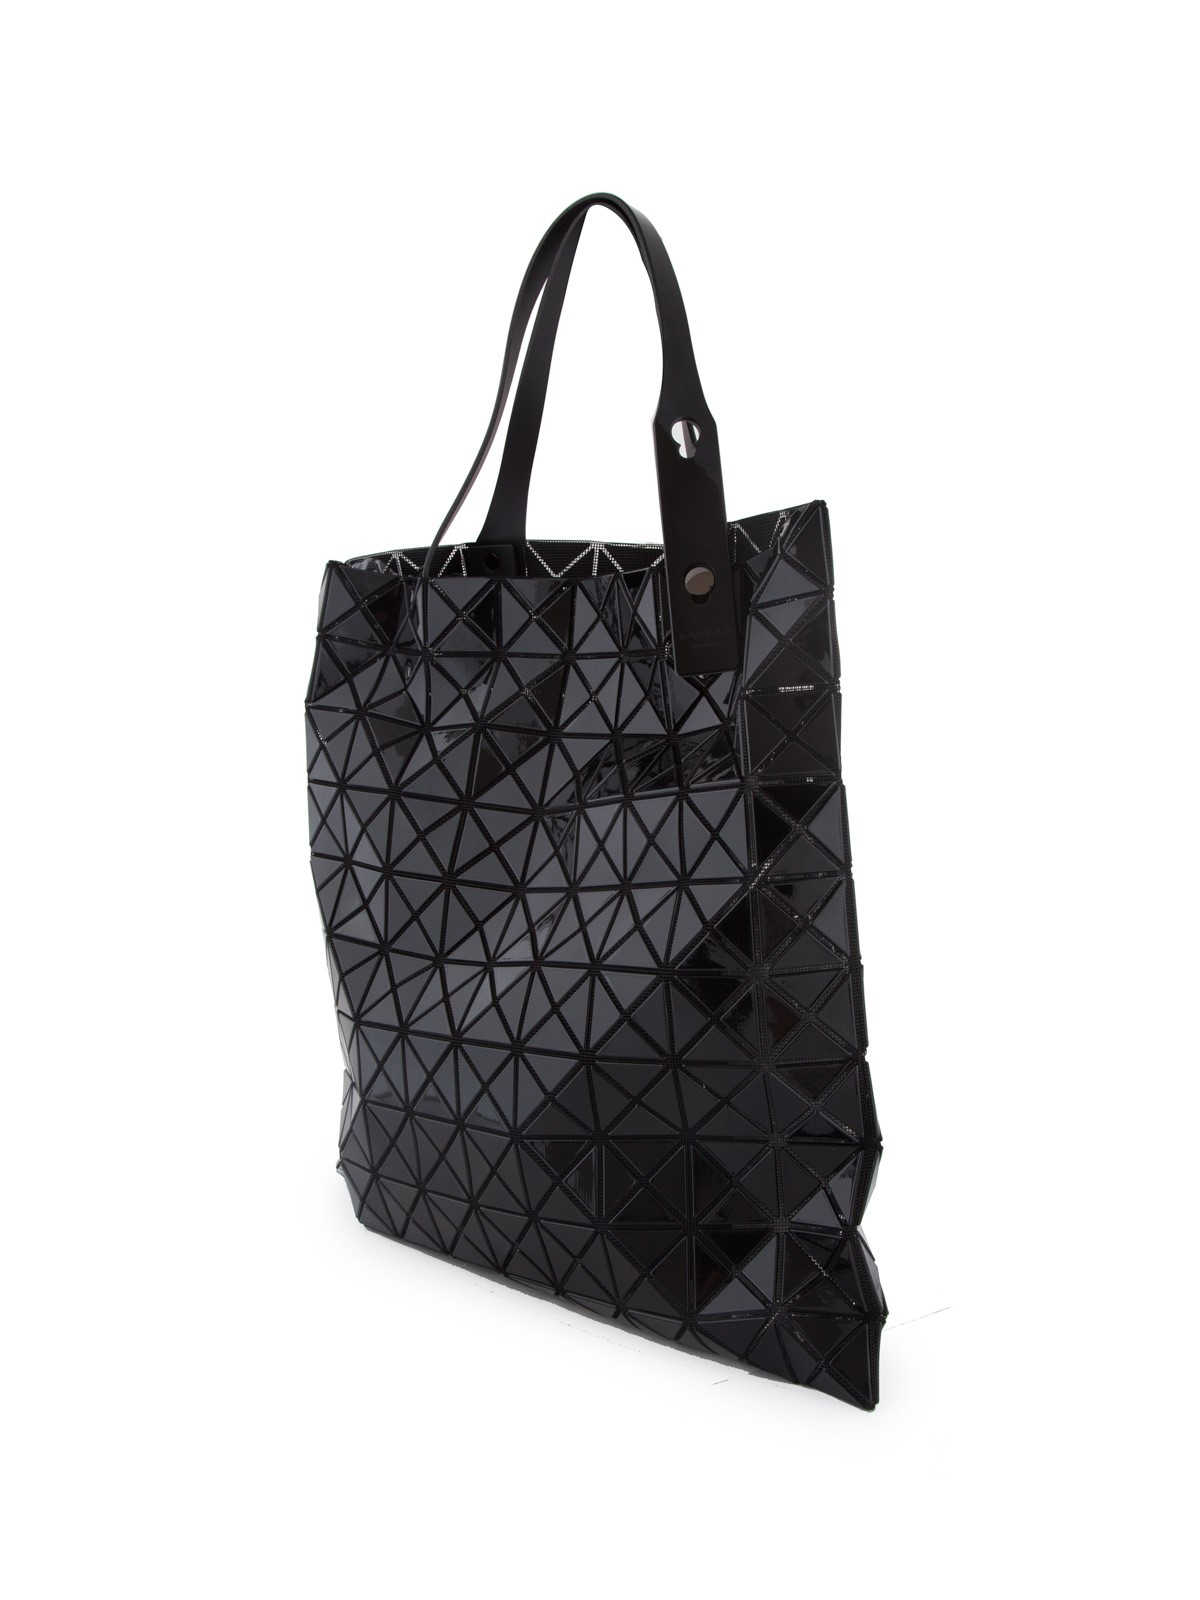 3609cb776b bao bao issey miyake PRISM TOTE BAG available on montiboutique.com ...